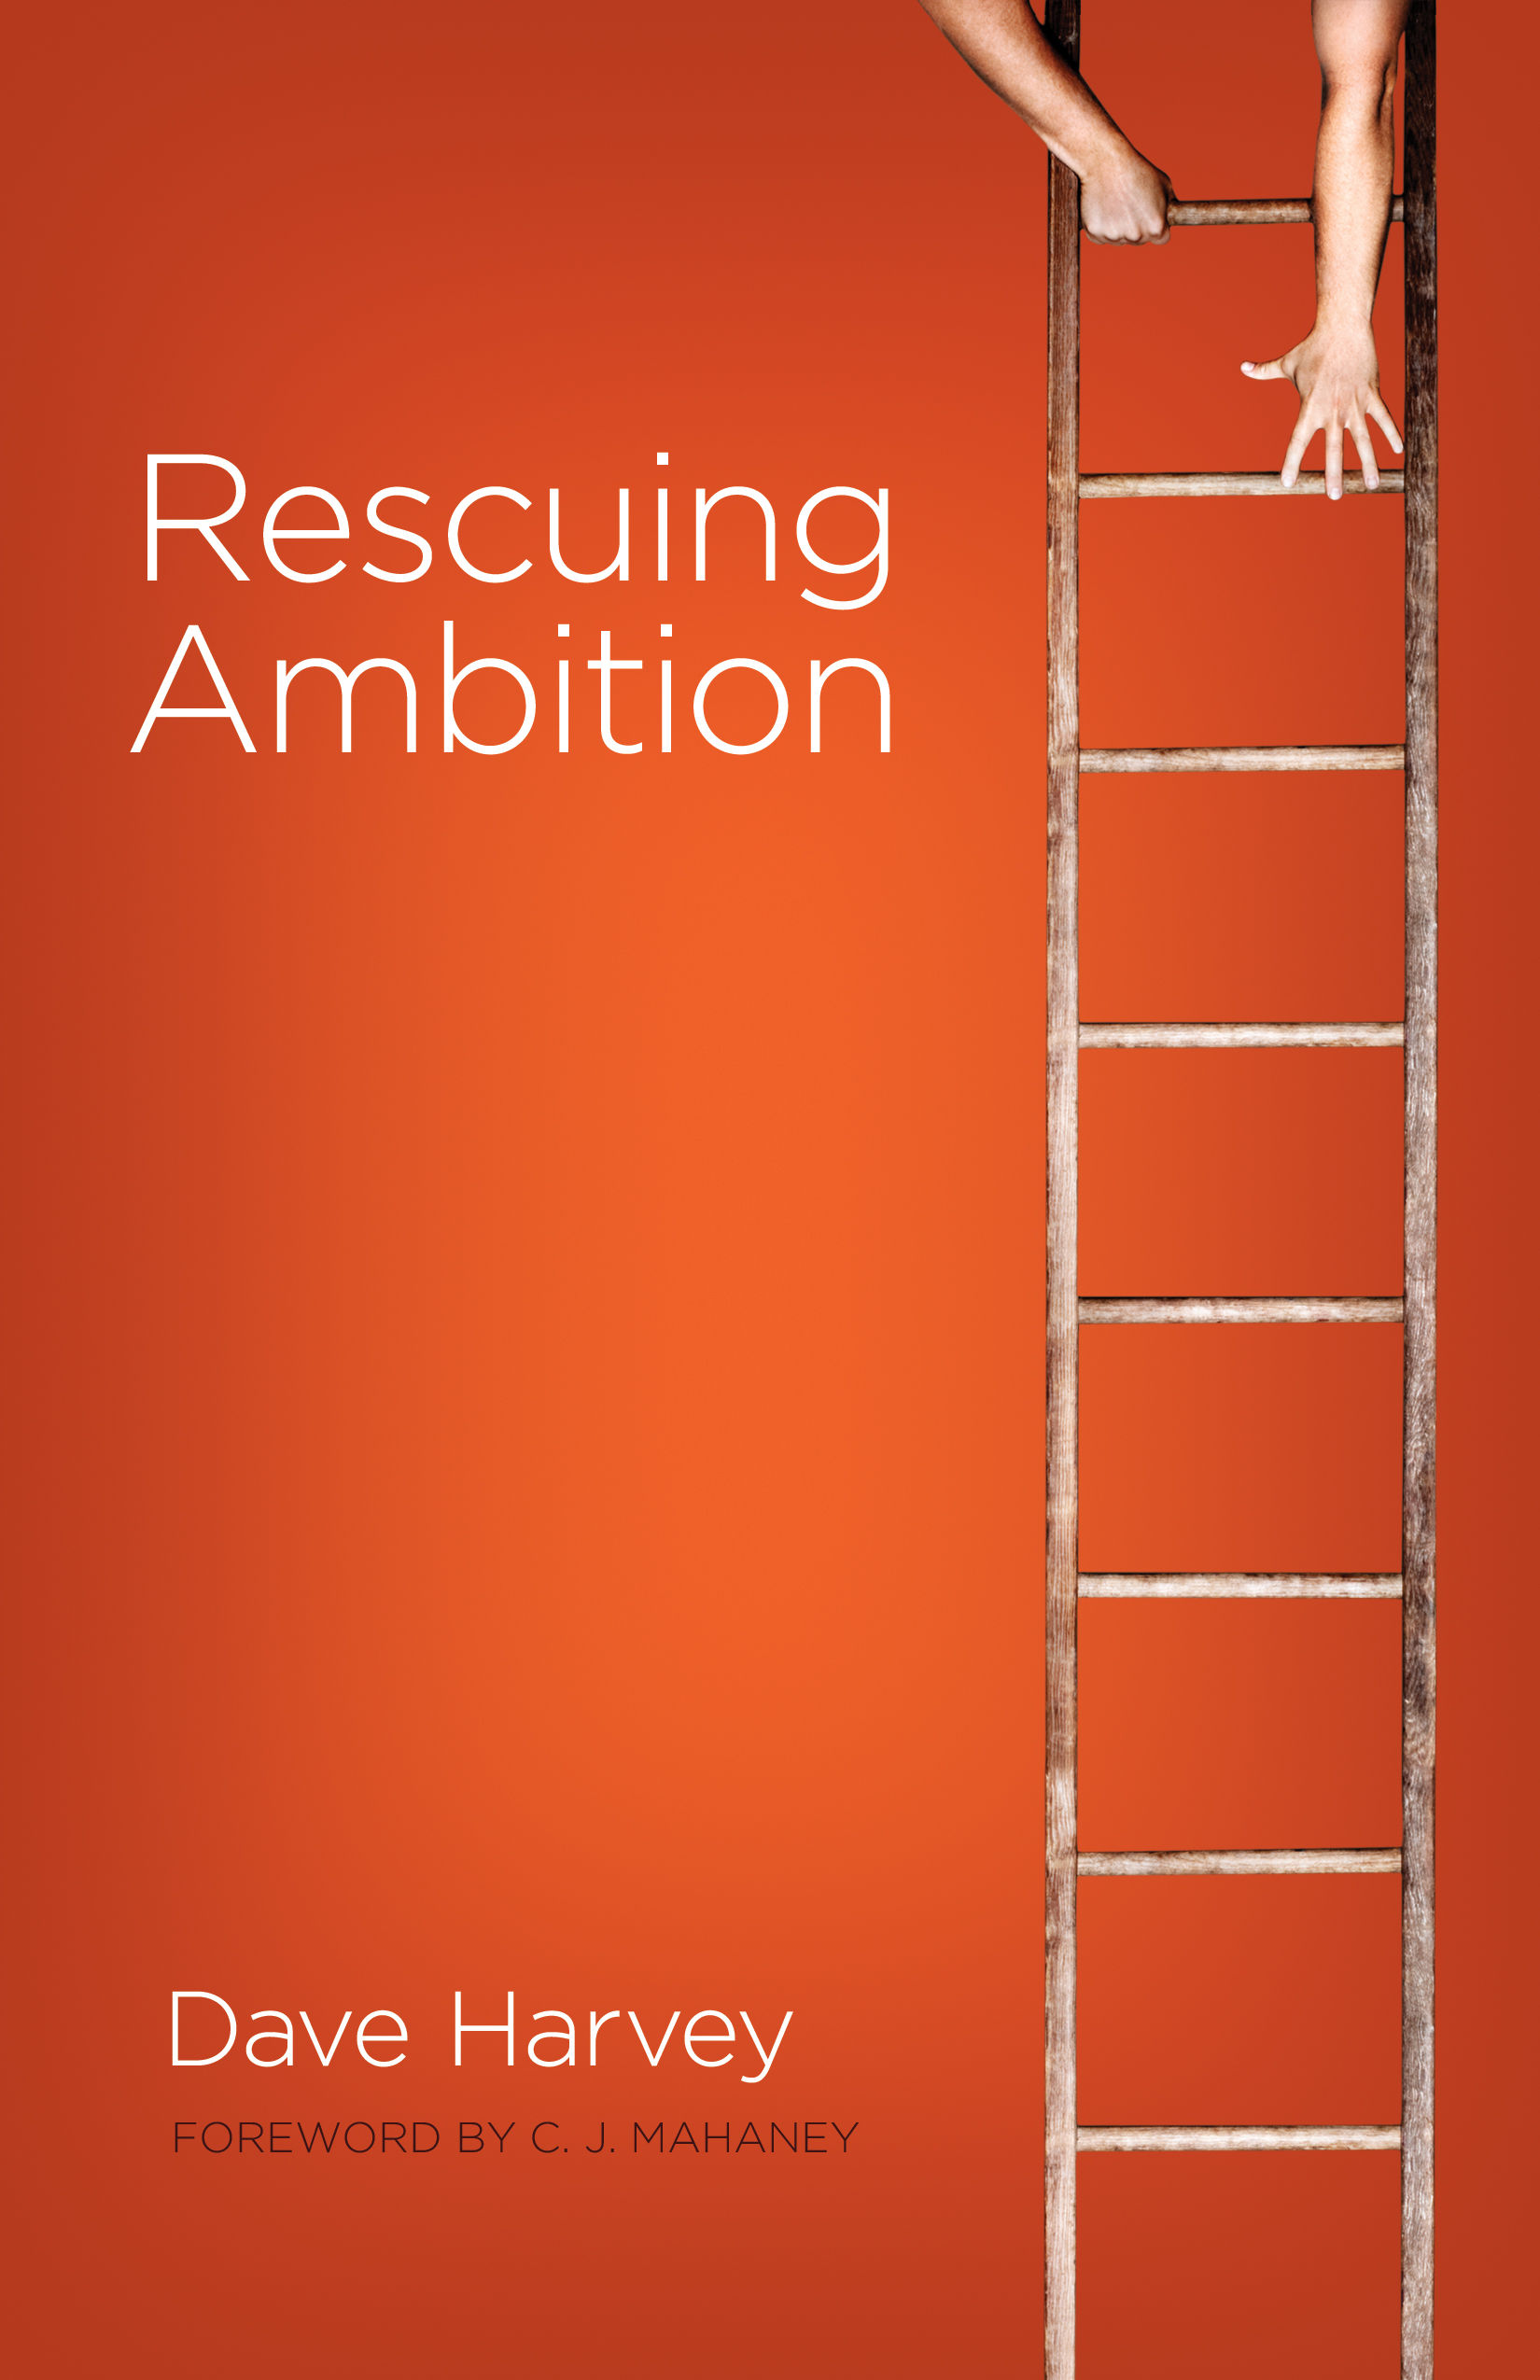 Rescuting Ambition